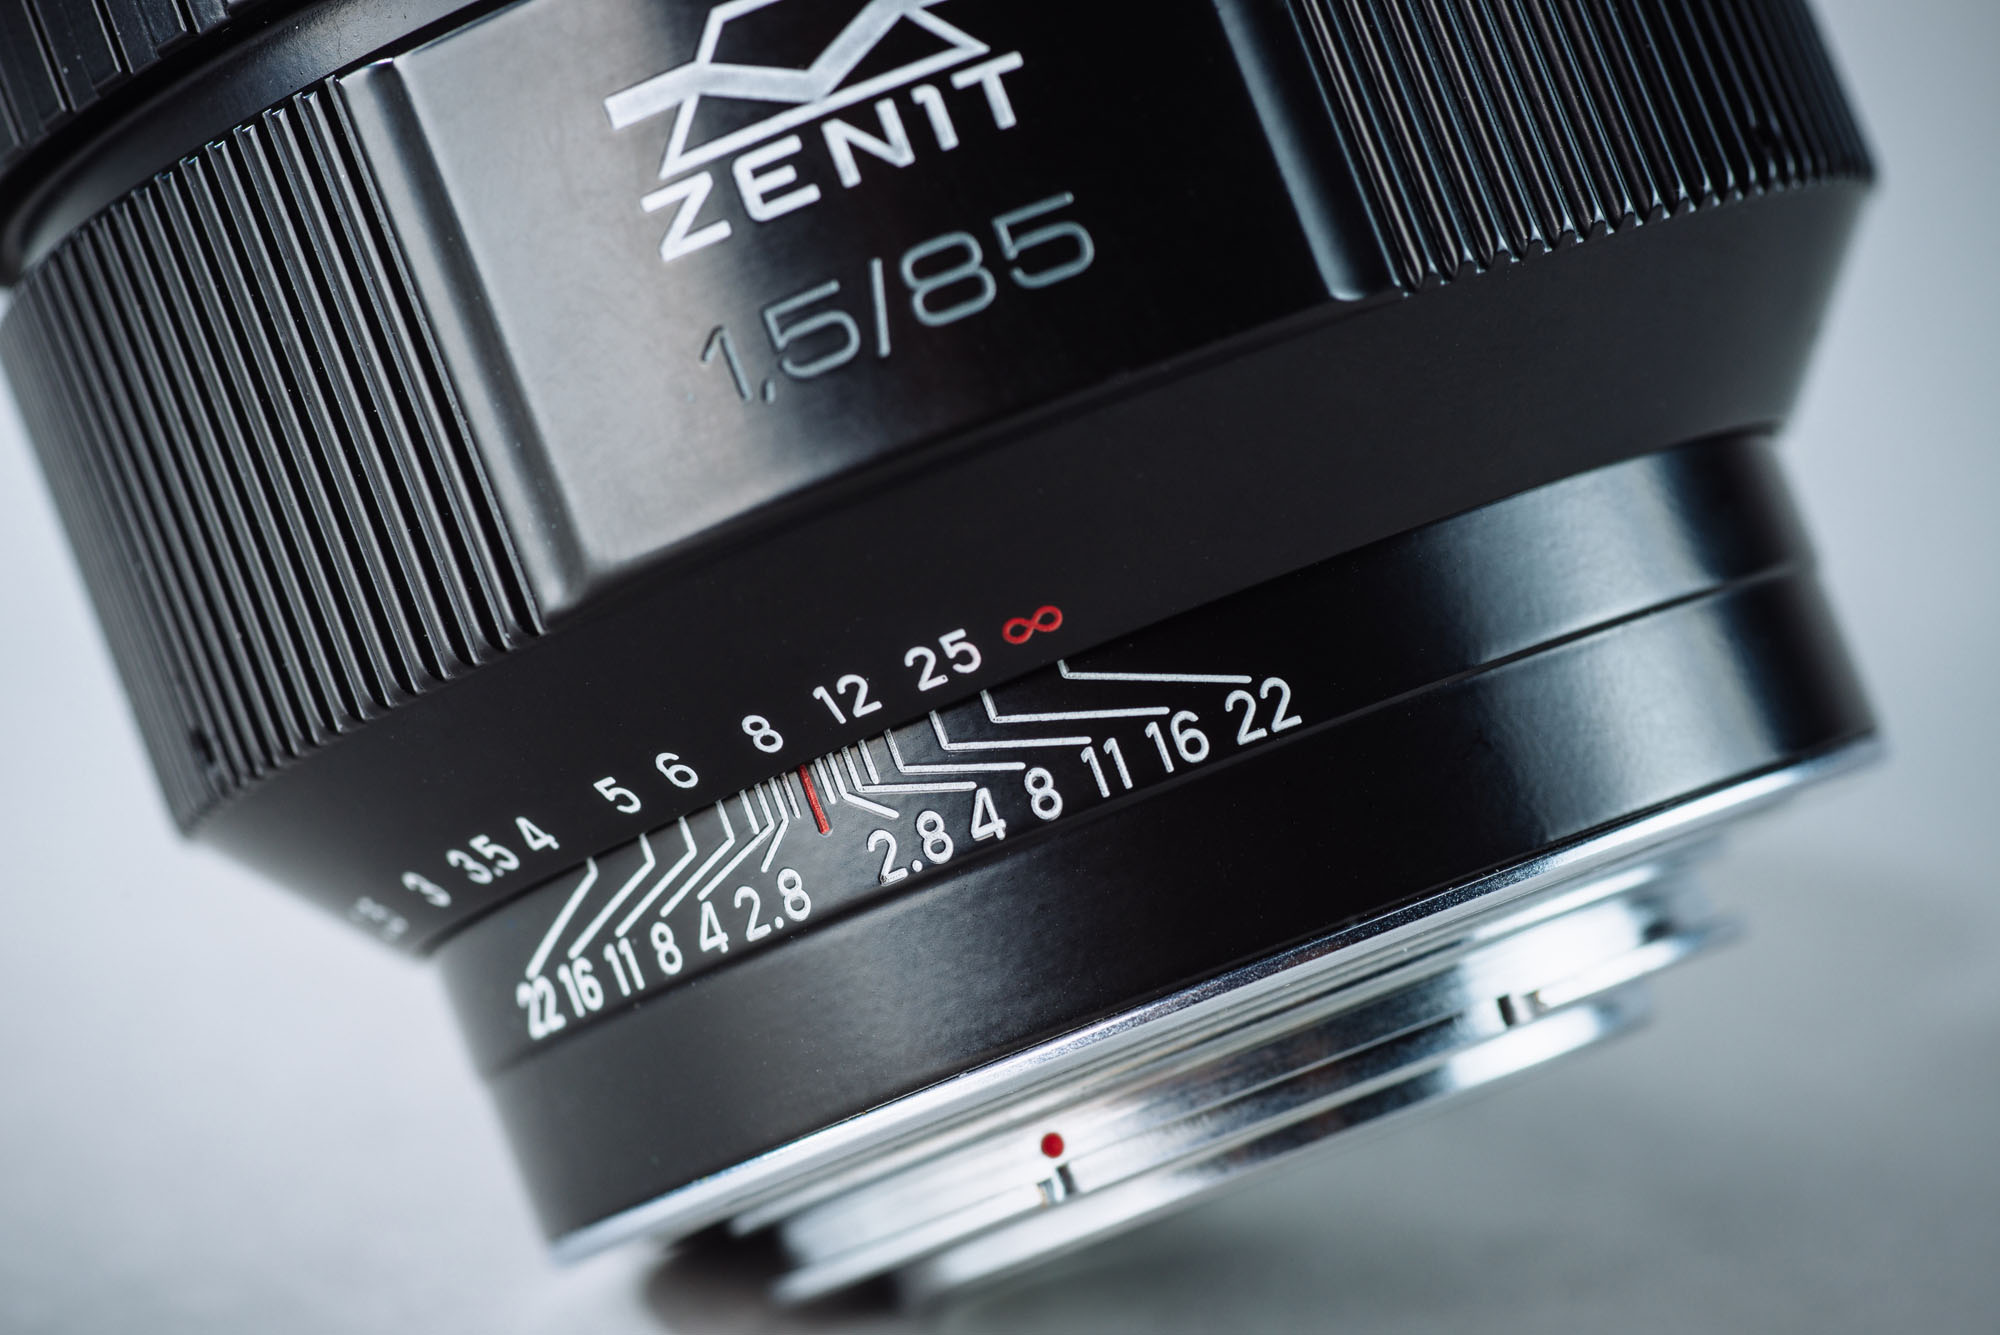 Zenit Mc Helios 40 2 85mm F 1 5 2015 Version Review Review By Richard